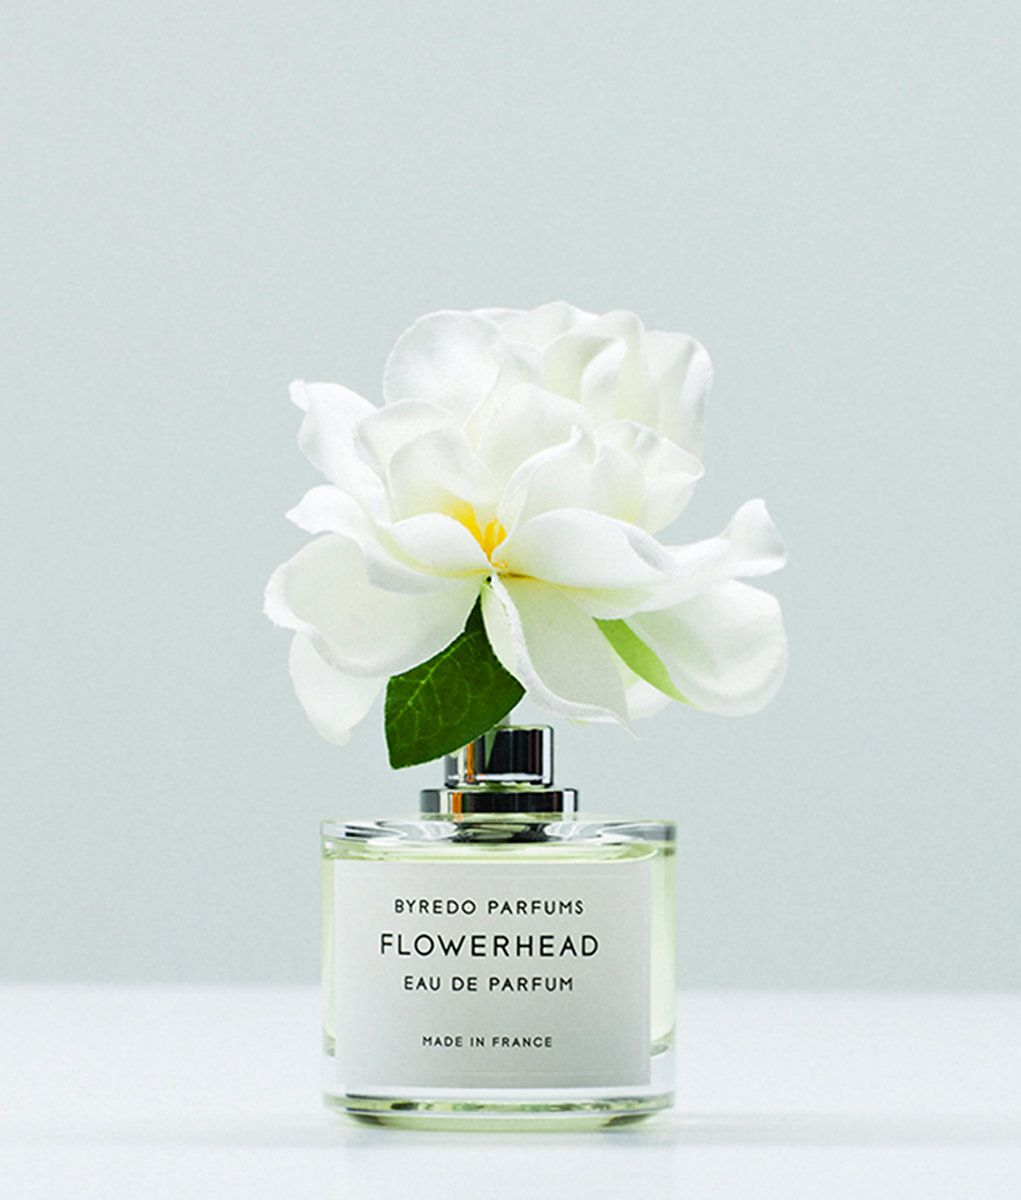 e706d44d93c4 Byredo Flowerhead Perfume  This Is What the Month of May Should Smell Like